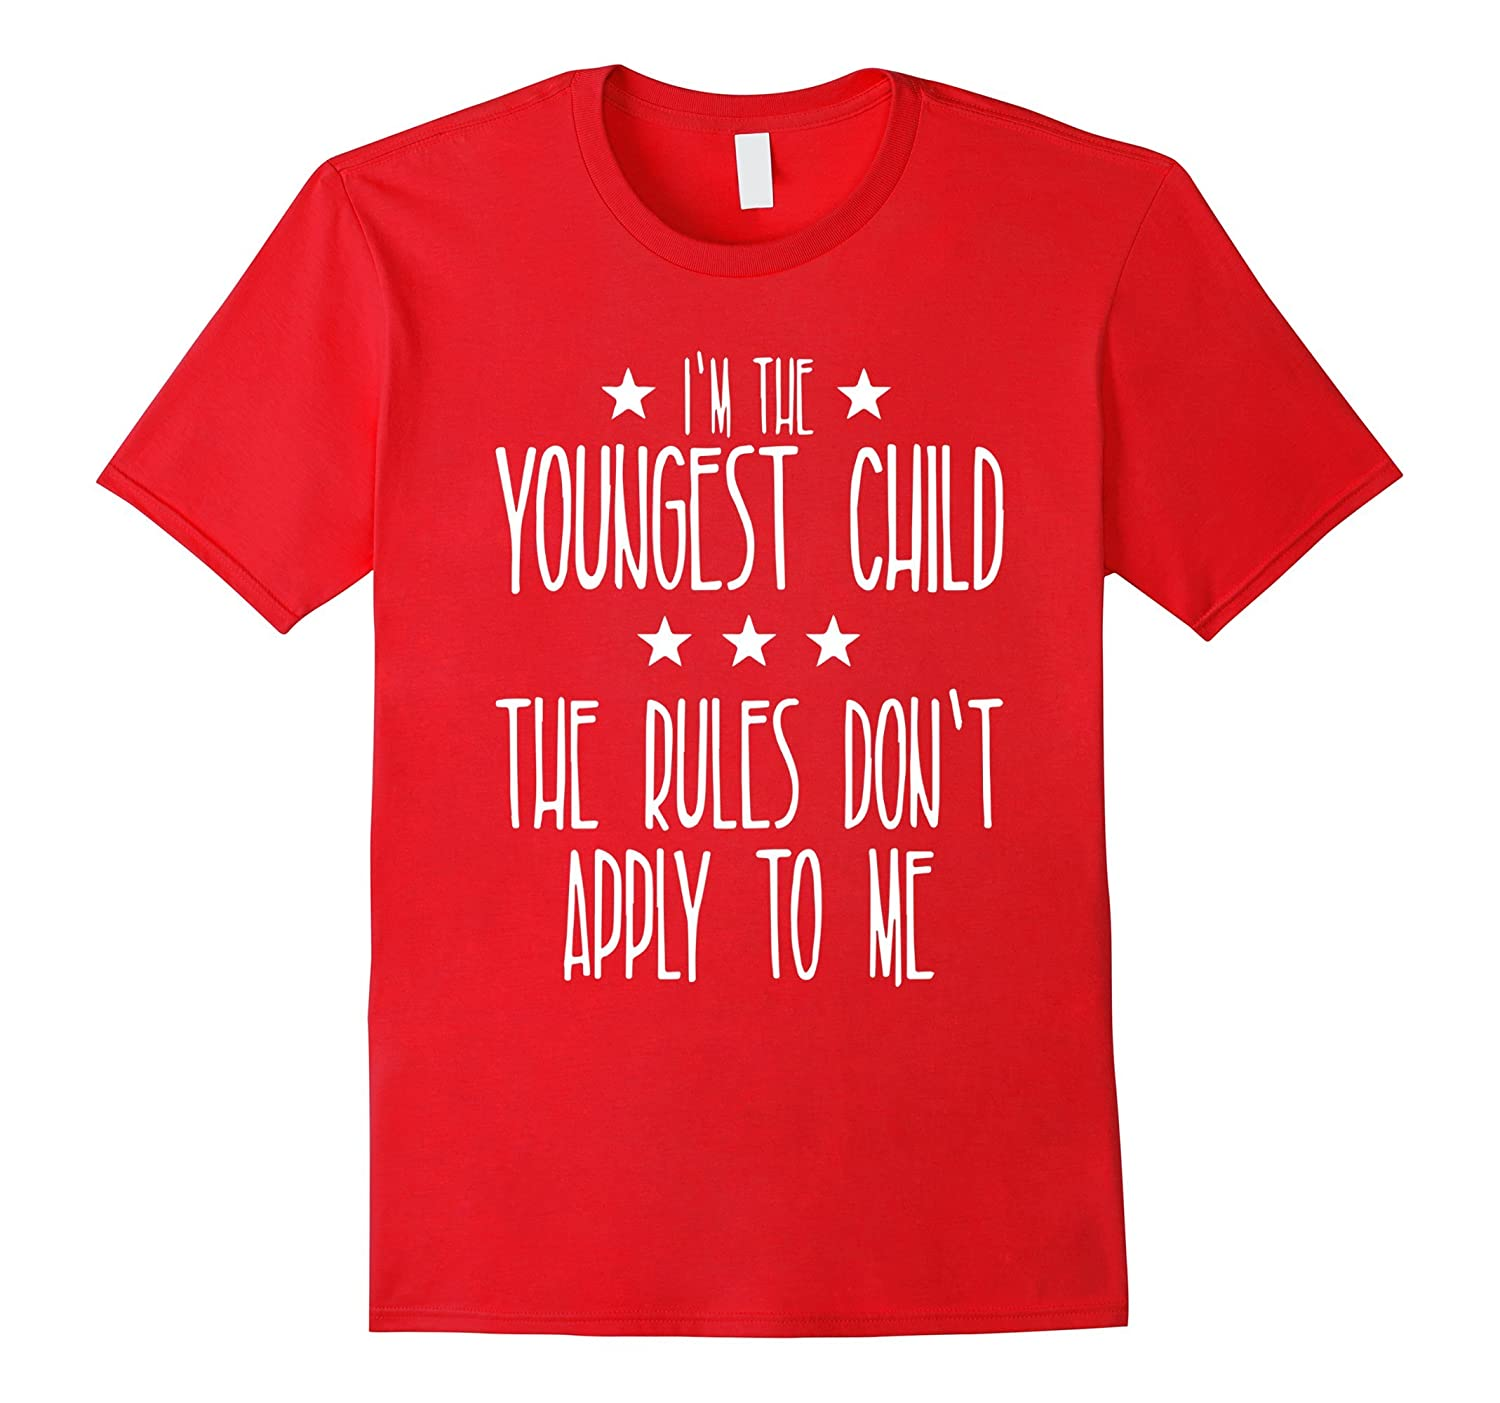 Youngest Child Rules Don't Apply Tshirt - Funny Sibling Tee-BN